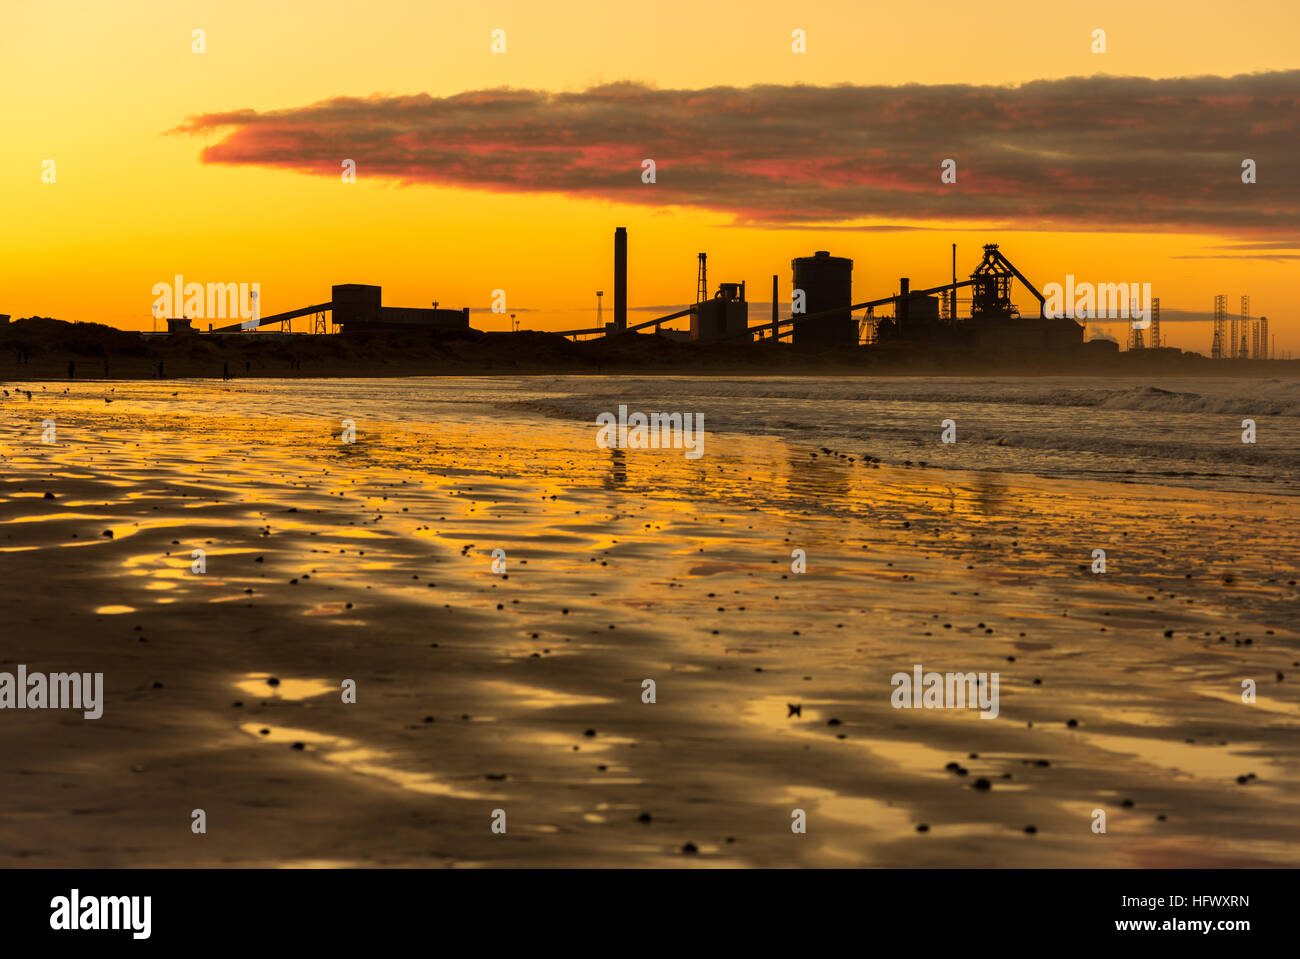 Redcar steelworks in silhouette at sunset - Stock Image